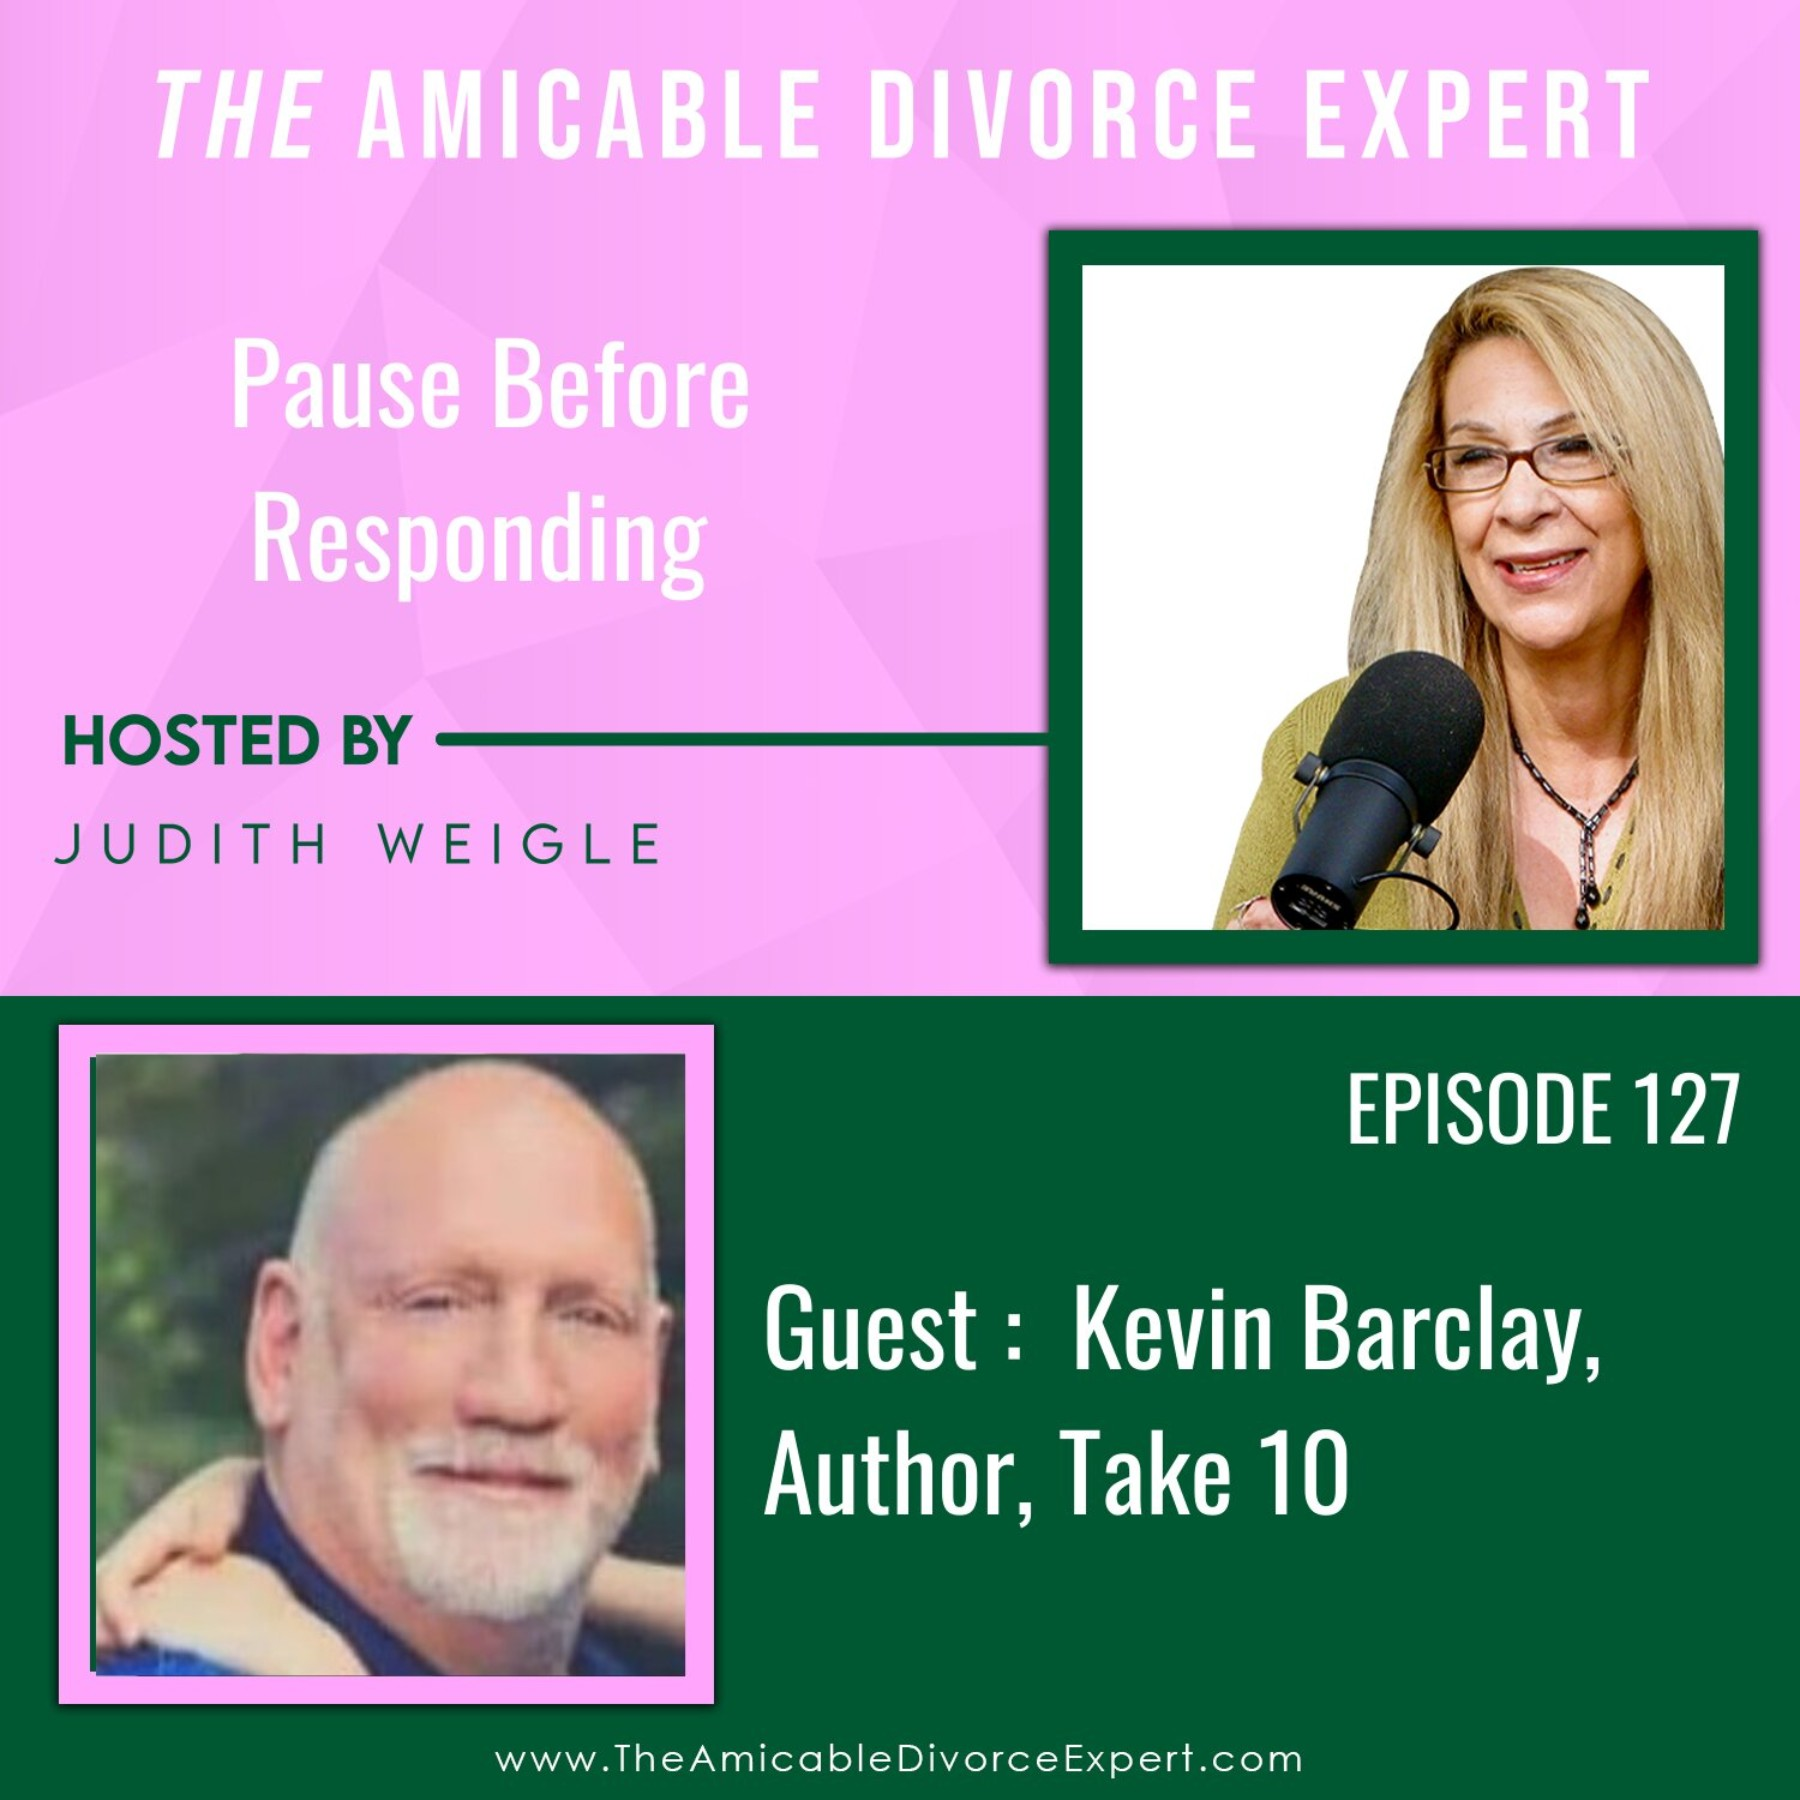 Pause Before Responding with Take 10 author Kevin Barclay